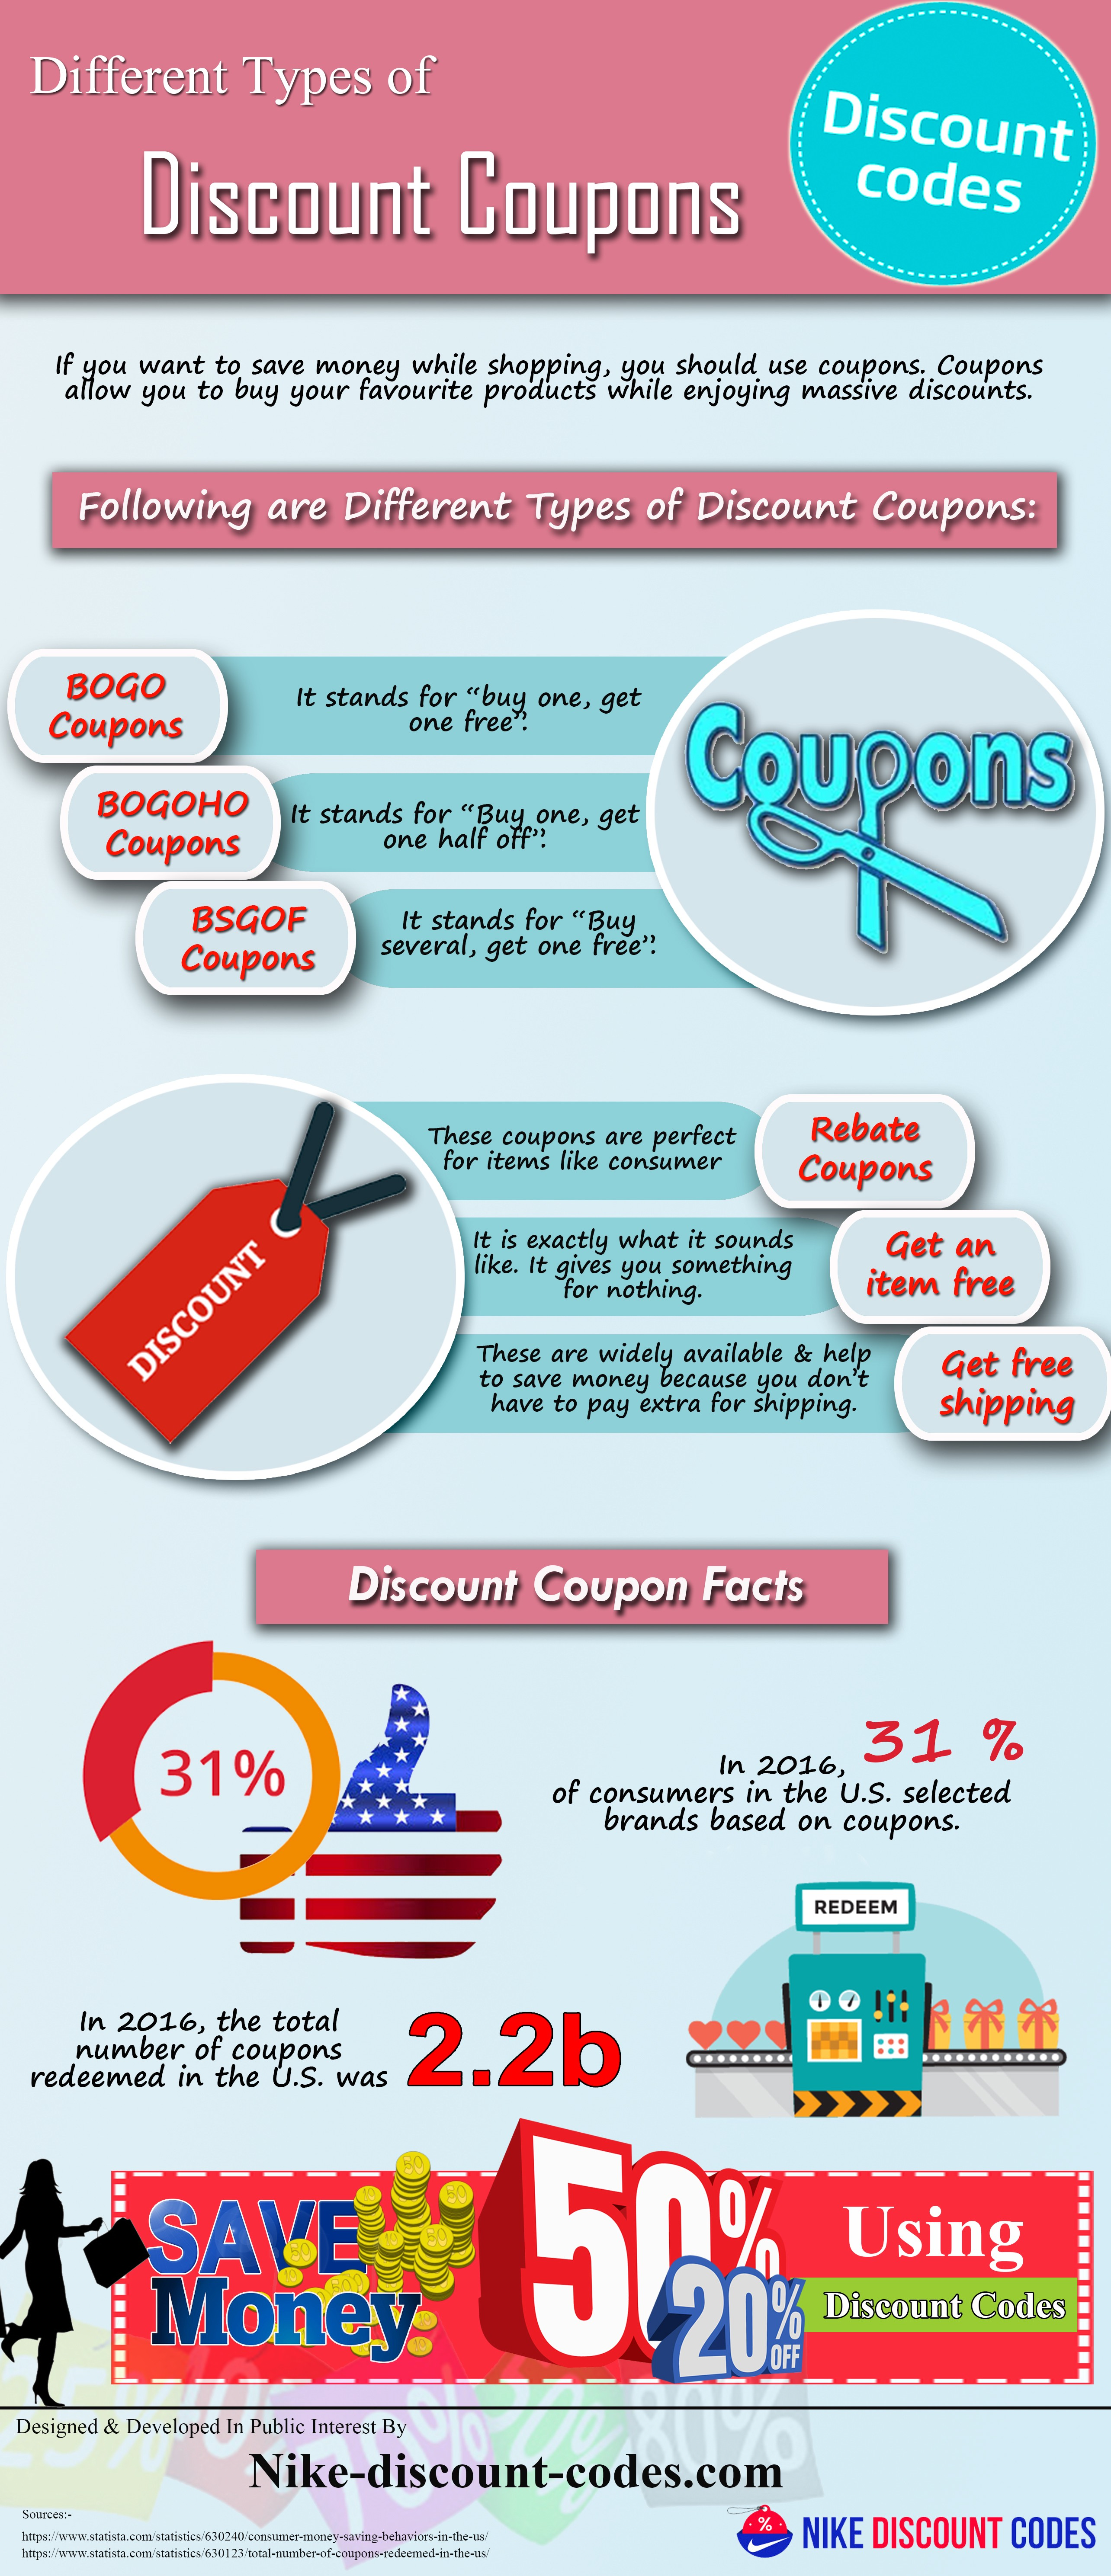 Different Types Of Discount Coupons By Nike Discount Codes Medium